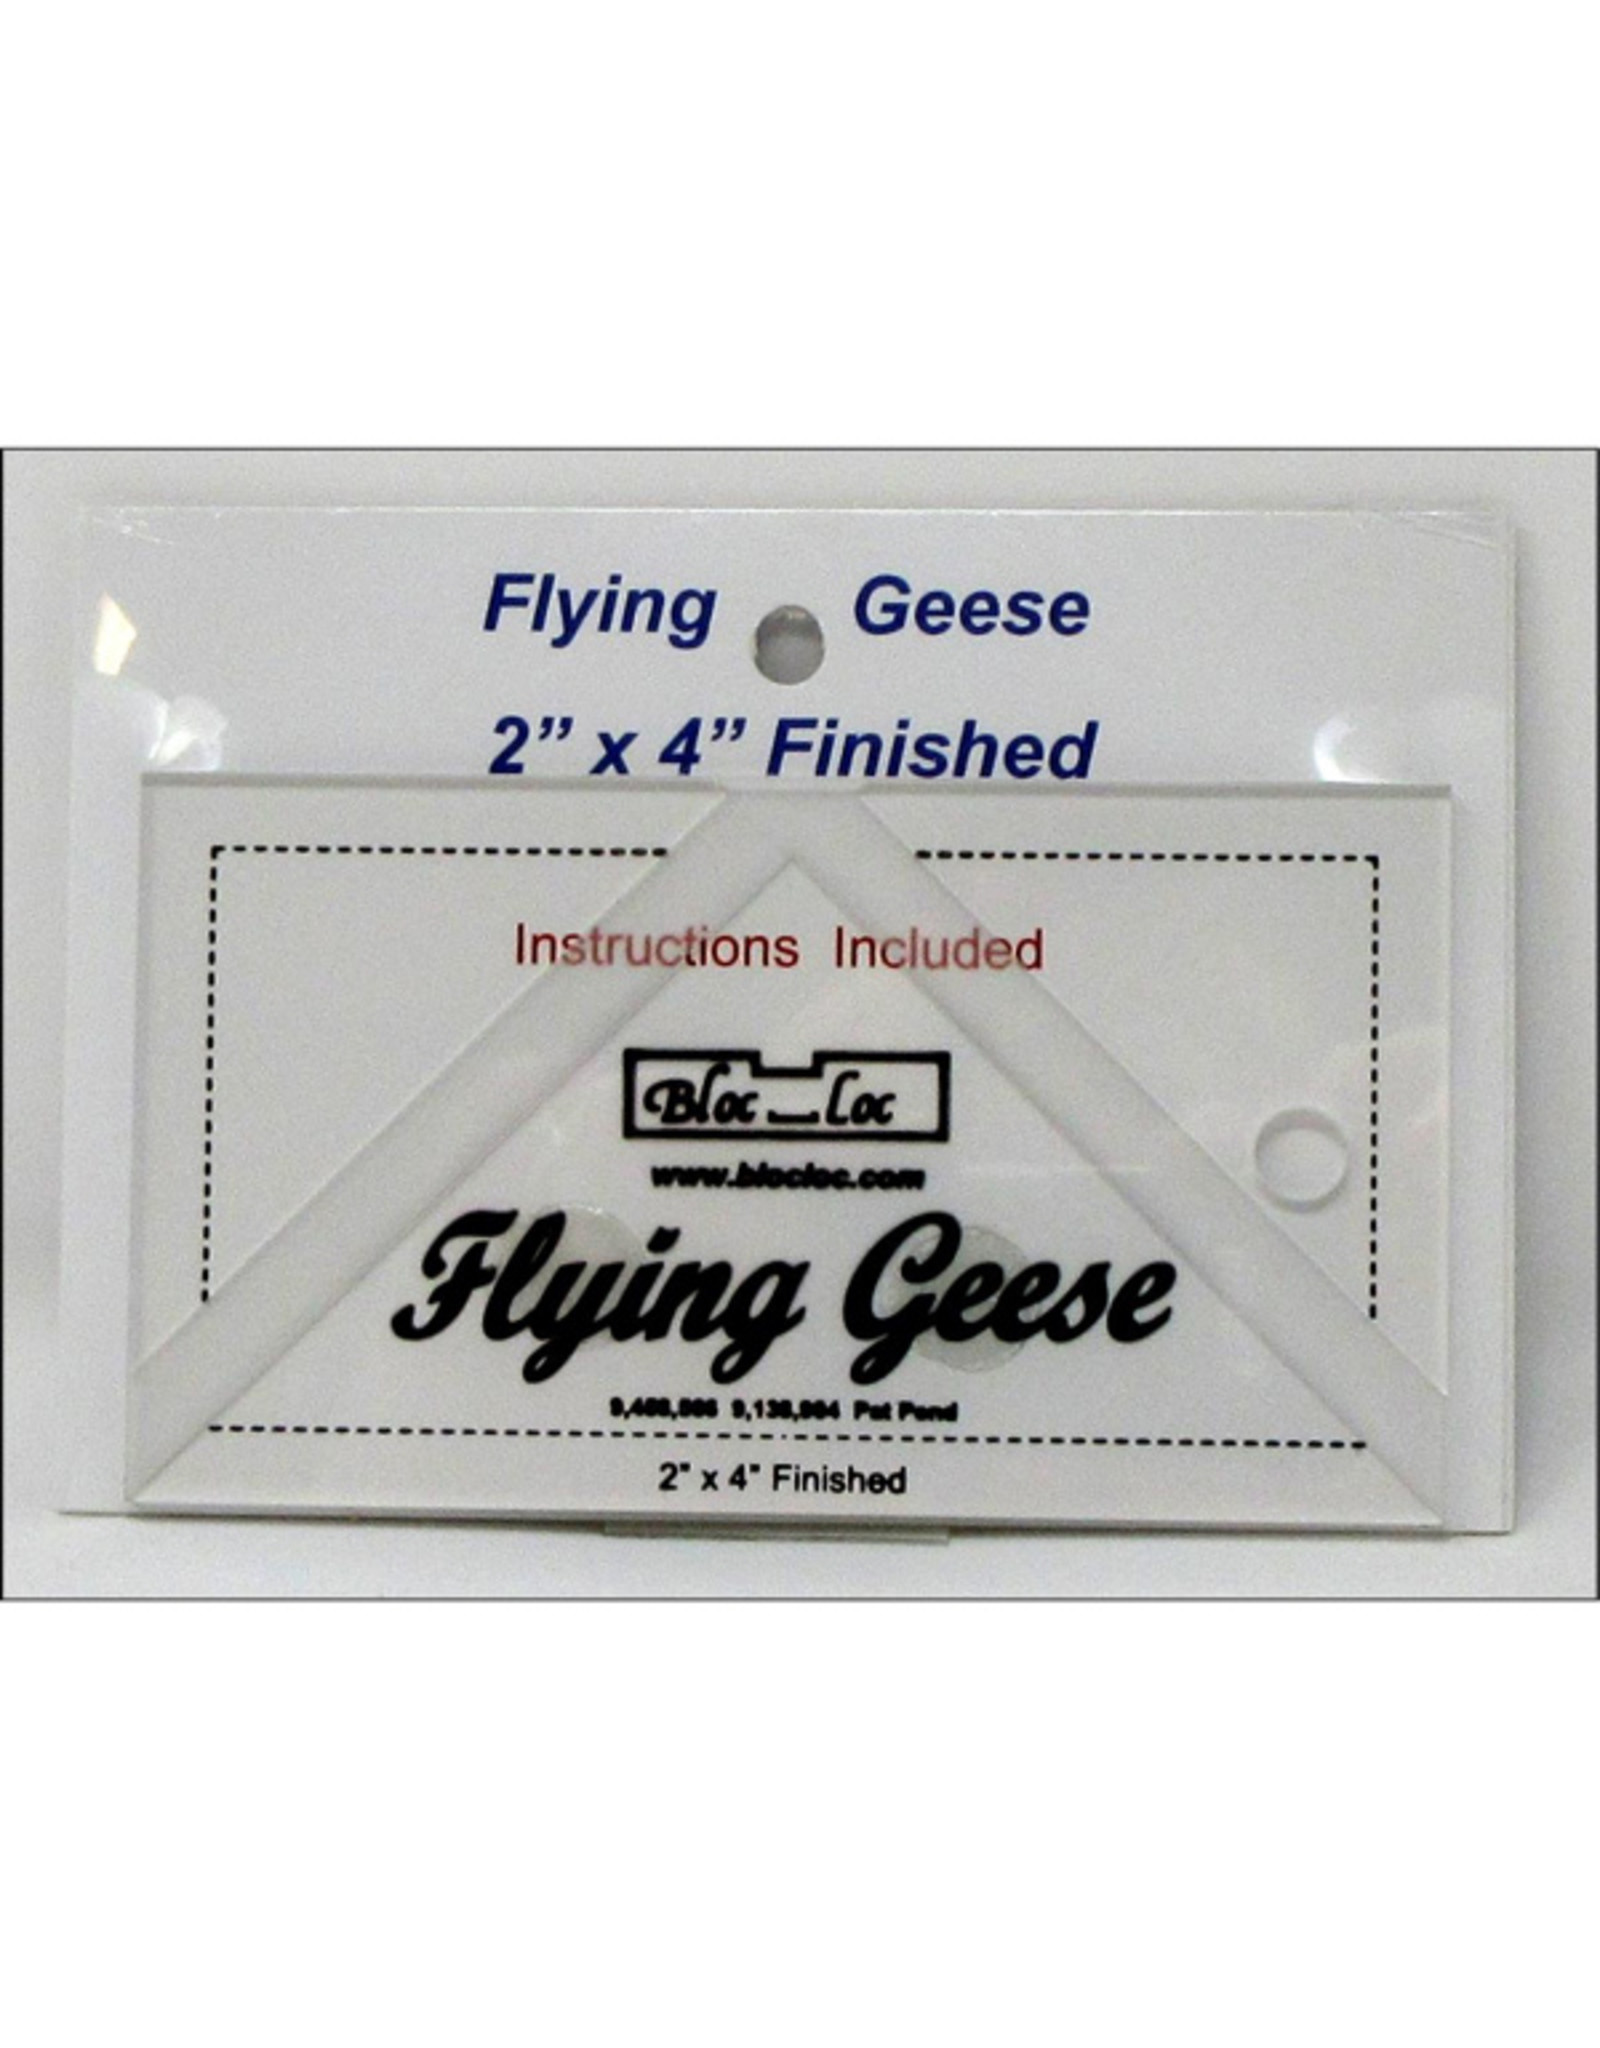 Bloc Loc Flying Geese Square Up Ruler - 2 x 4 inch